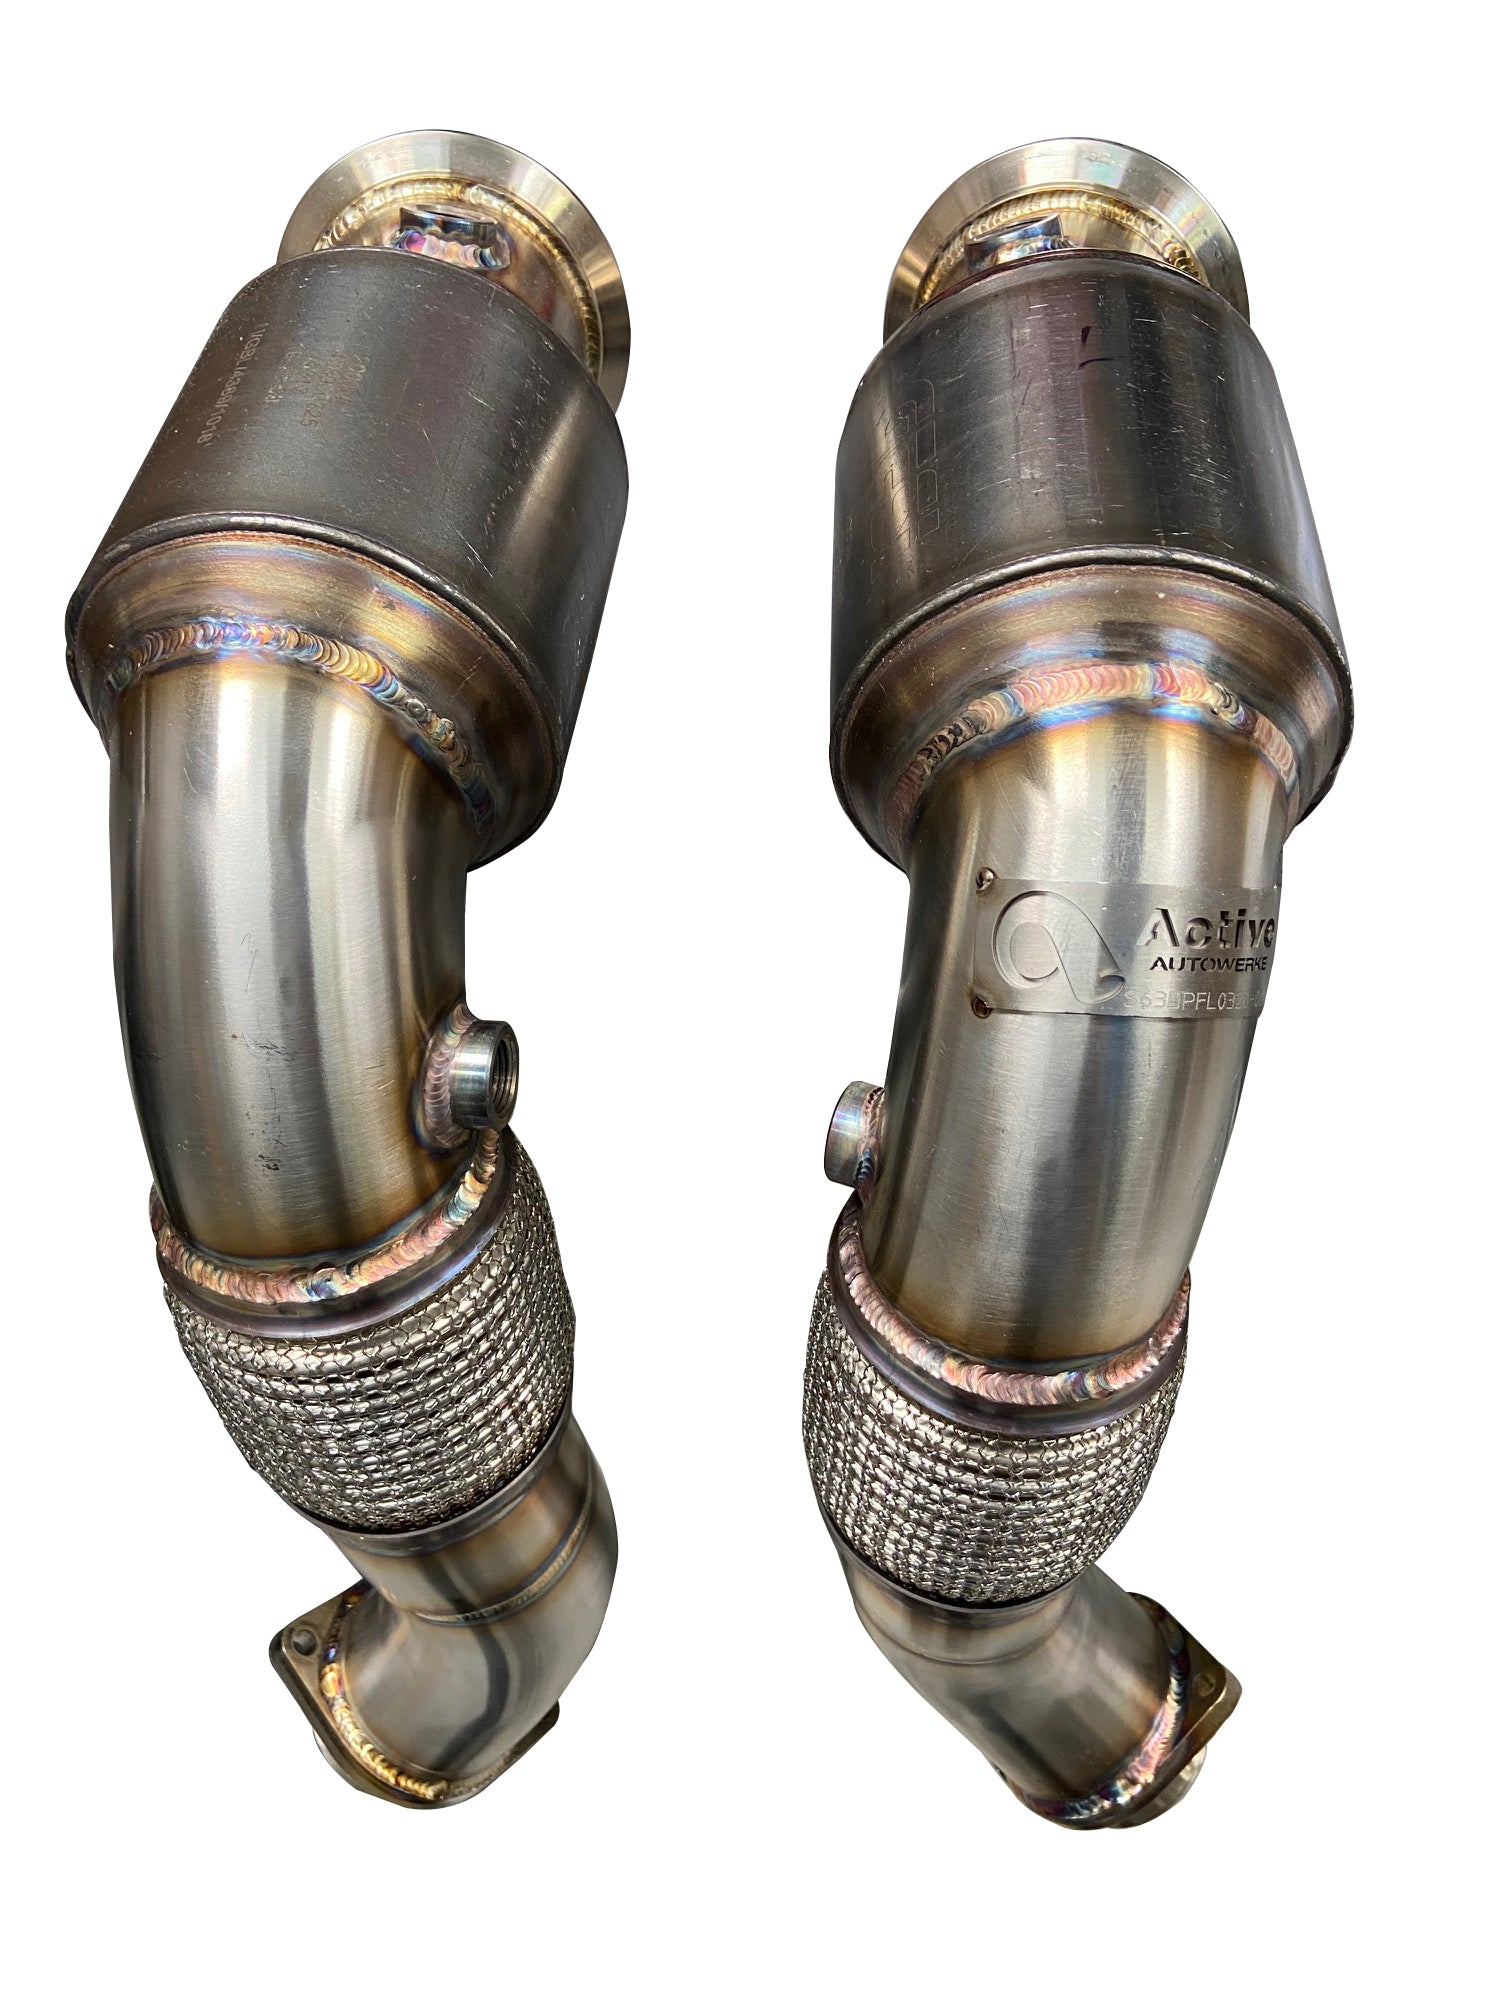 BMW S63 N63 Catted Downpipes | V8 BMW X5 M and X6 M X5 X6 550i 650i